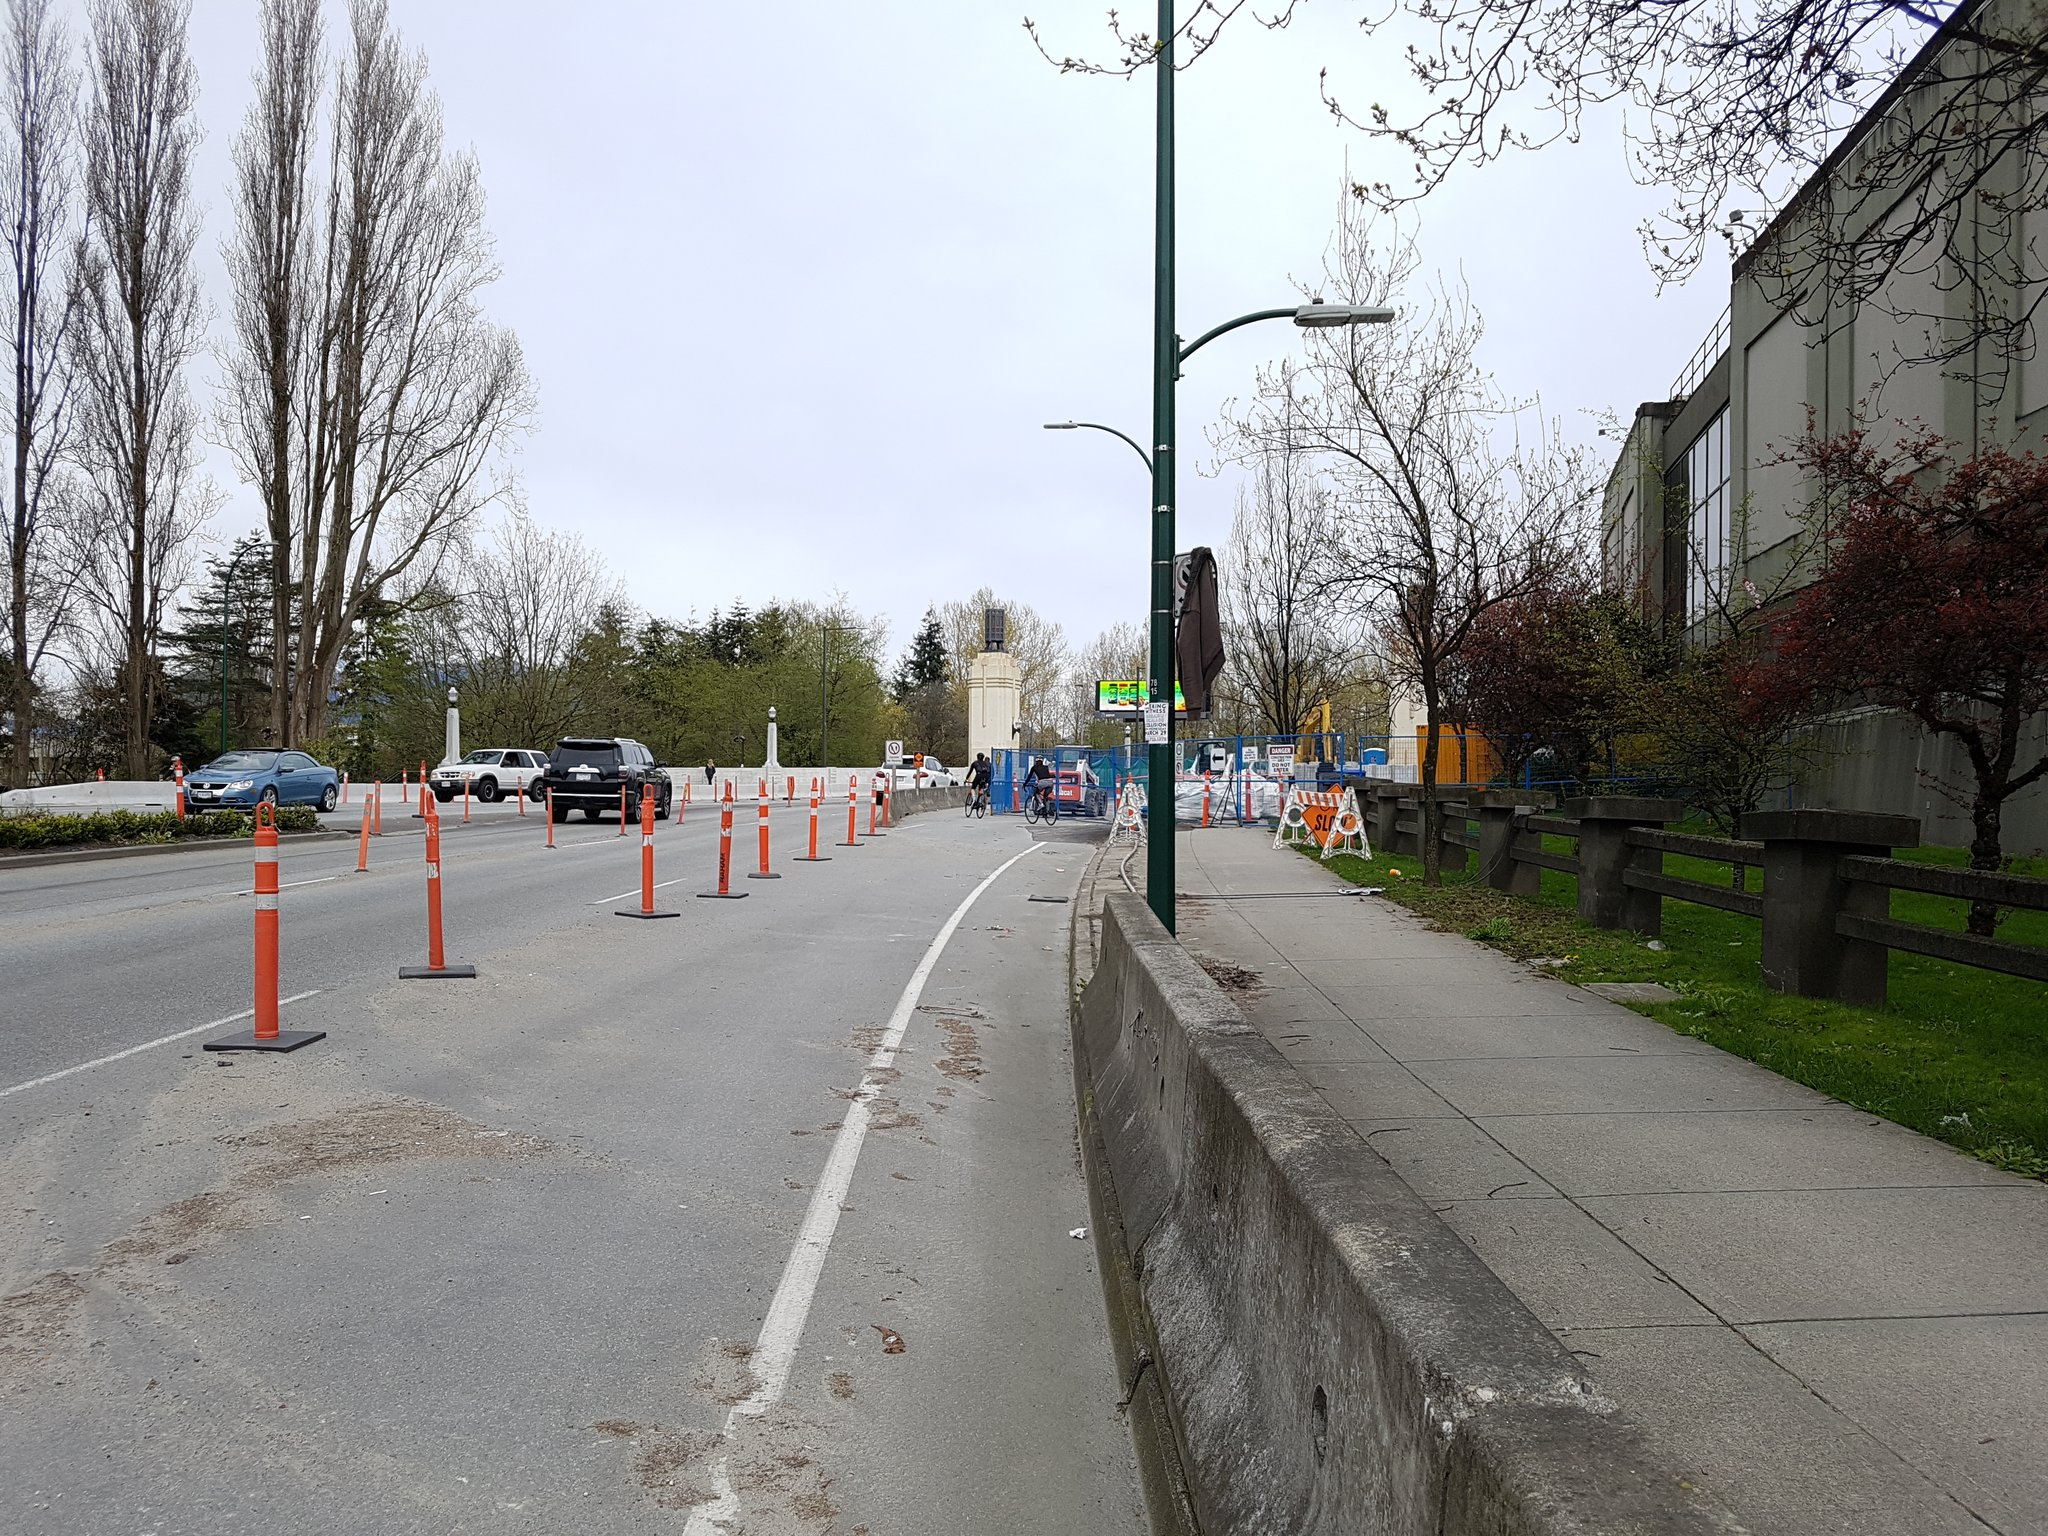 But because this is Vancouver, construction means moving the protected bike lane, not forcing bike riders into traffic #yyjbike https://t.co/GXyEyoJwVv